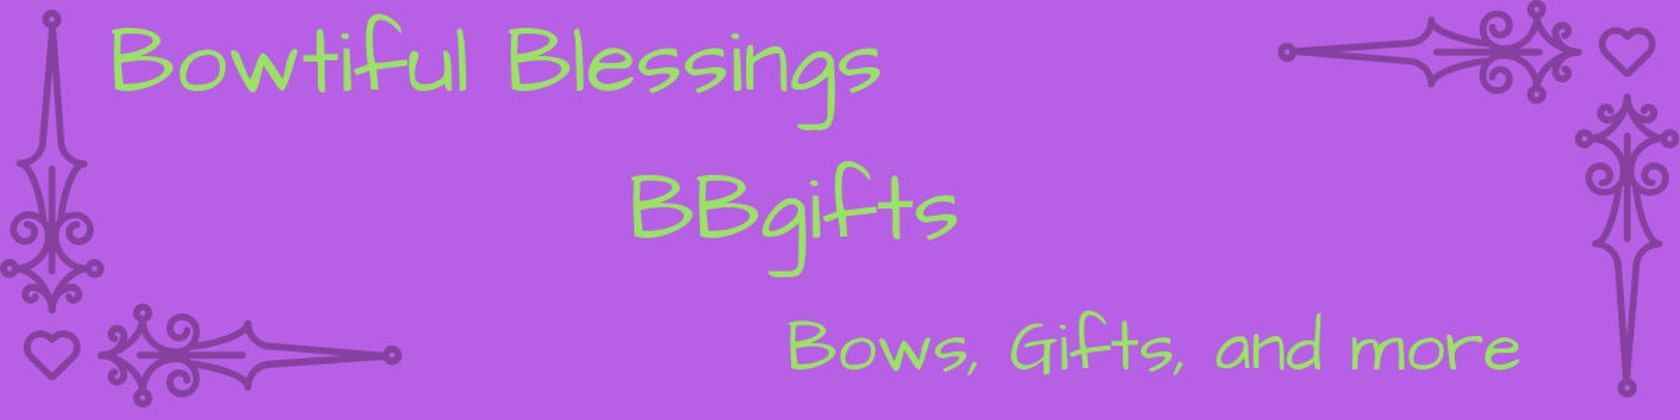 cda4b6488fa6 BOWtiful Blessings Gifts and More by BBgiftsandmore on Etsy